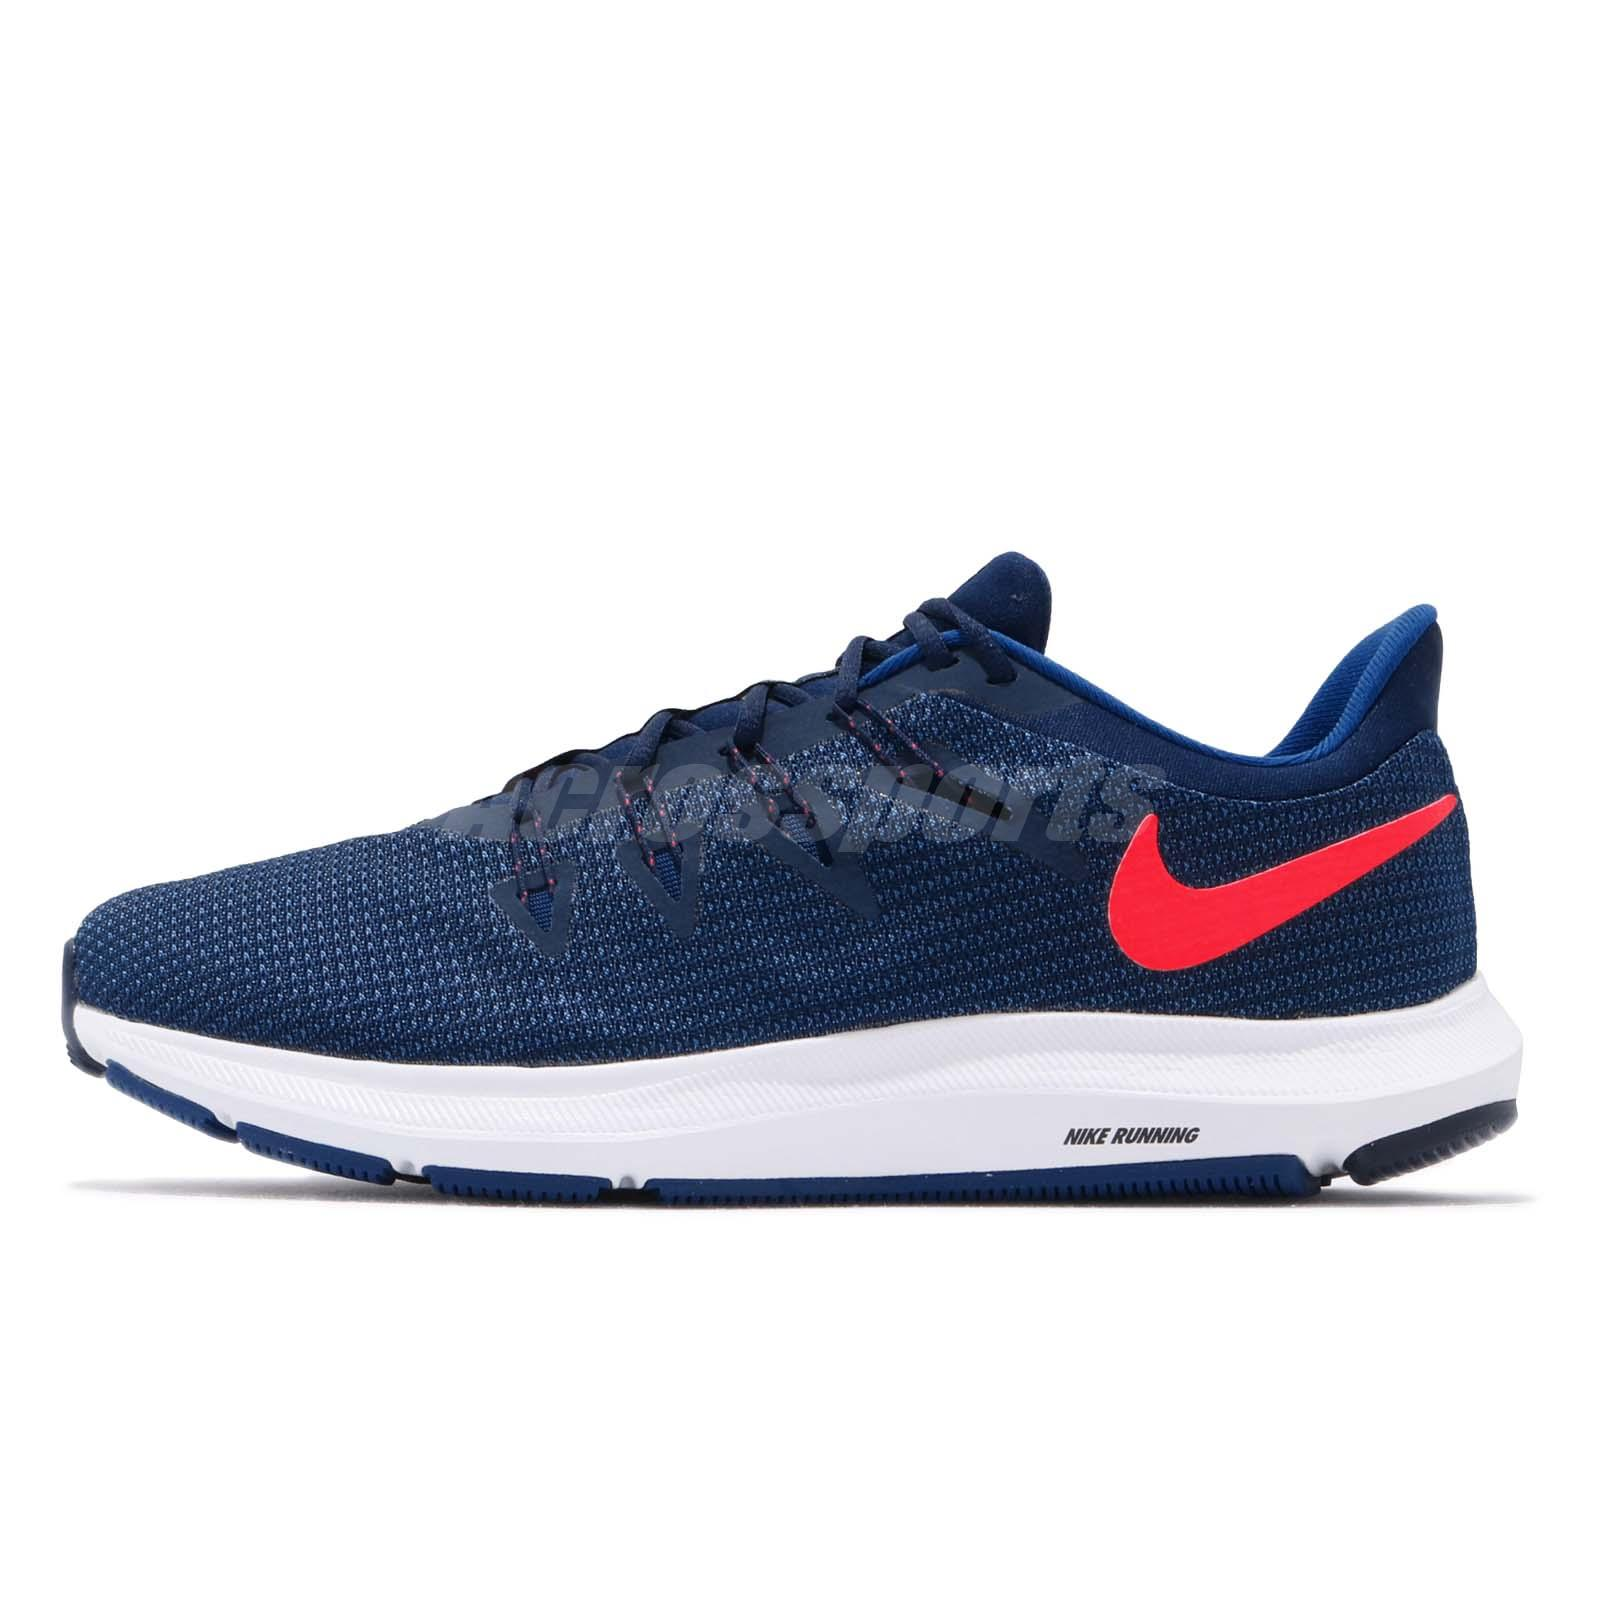 best service ad776 6d561 Nike Quest Blue Void Red Orbit White Men Running Shoes Sneakers AA7403-403